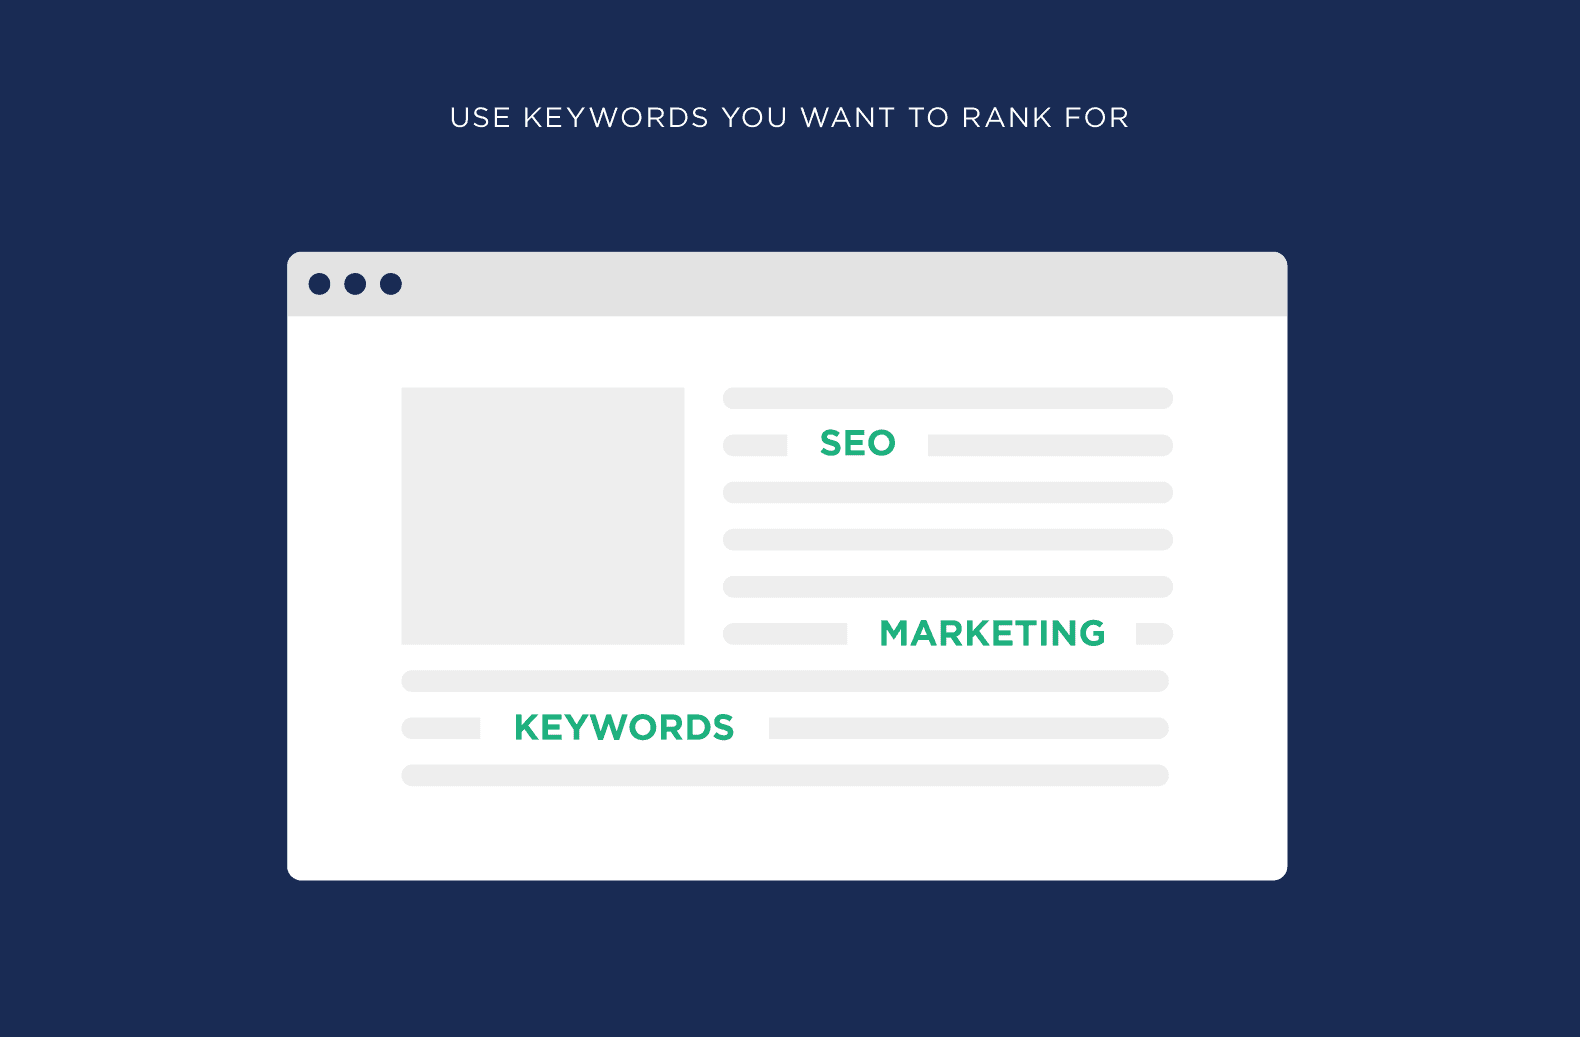 Use keywords you want to rank for